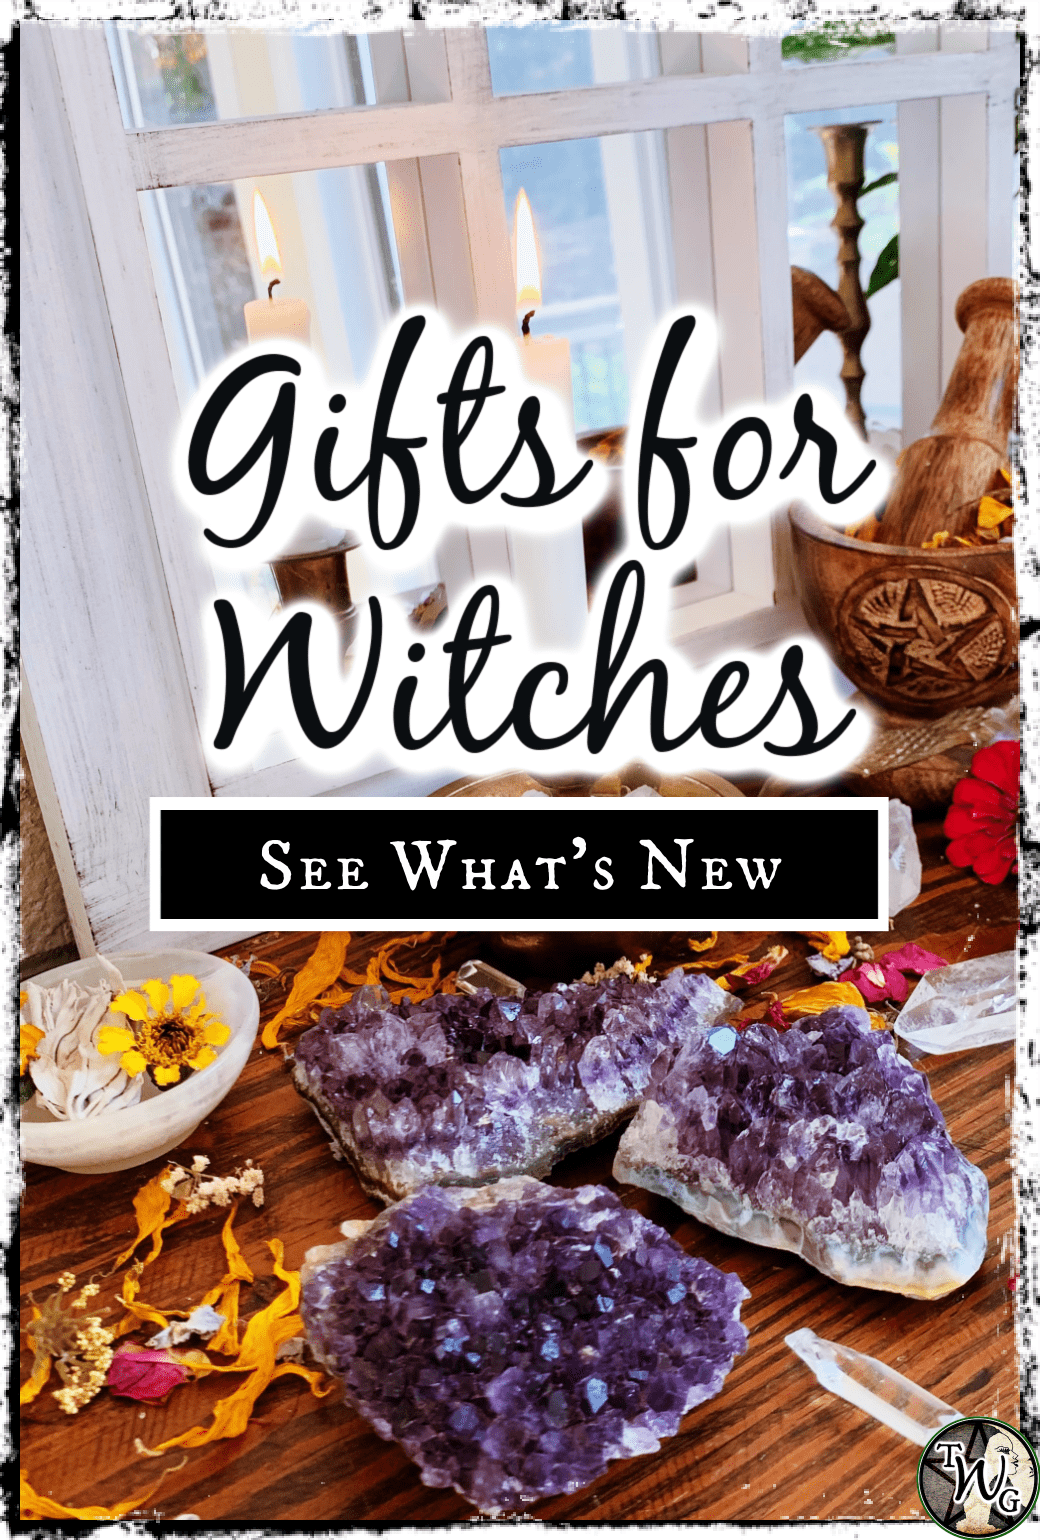 The Witch's Guide Shop, Witchcraft Supplies